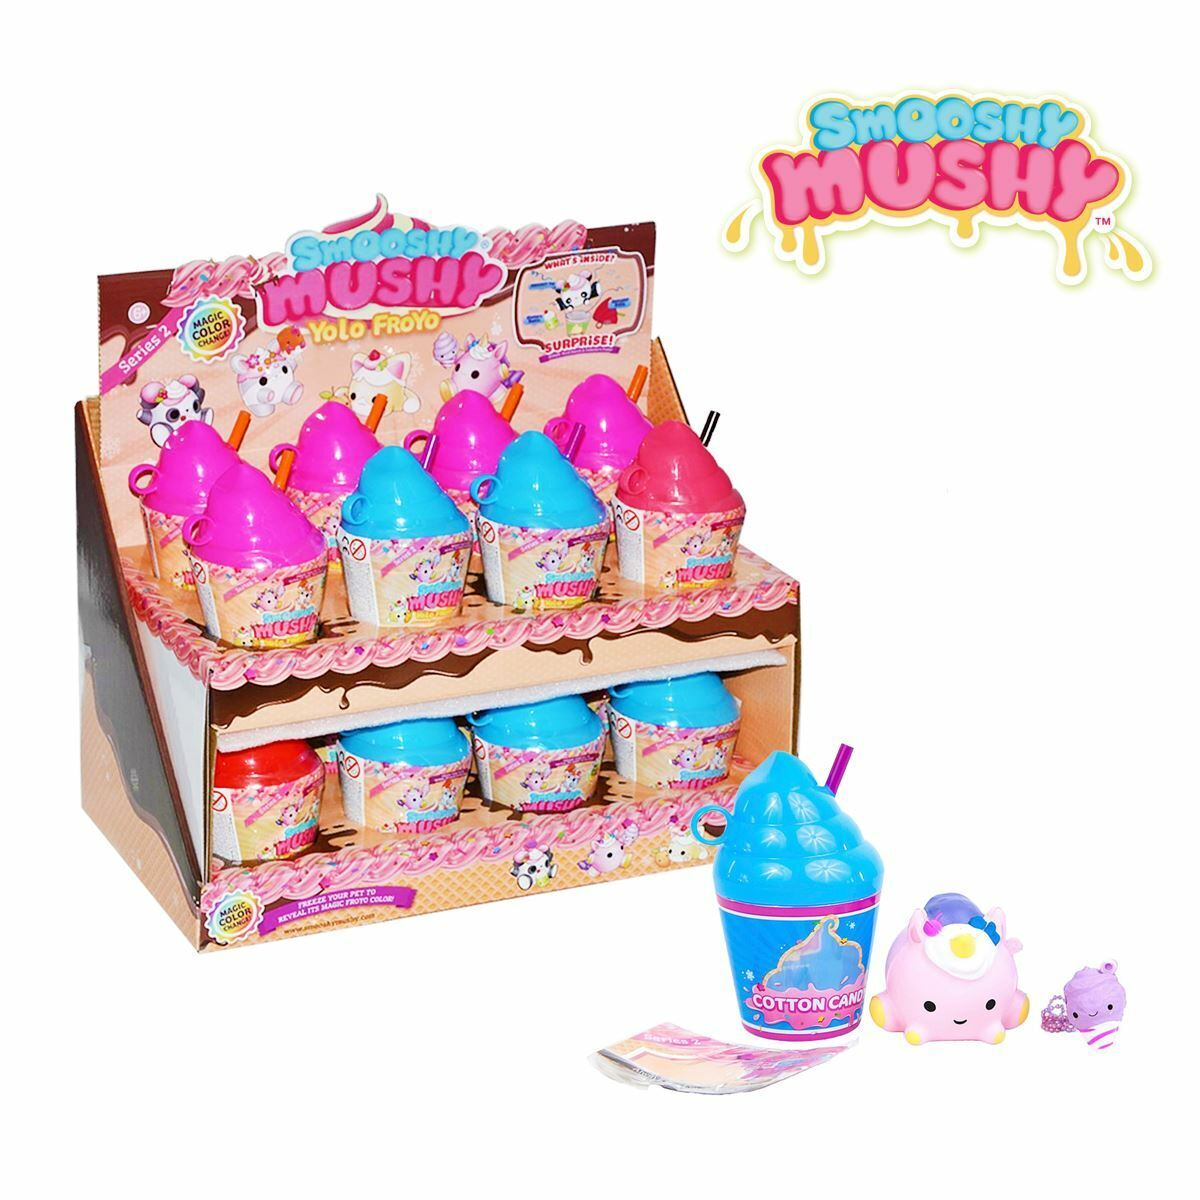 New 1 3 5 Or 10 Smooshy Mushy Yolo Froyo Series 2 Surprise Pet & Bestie Official